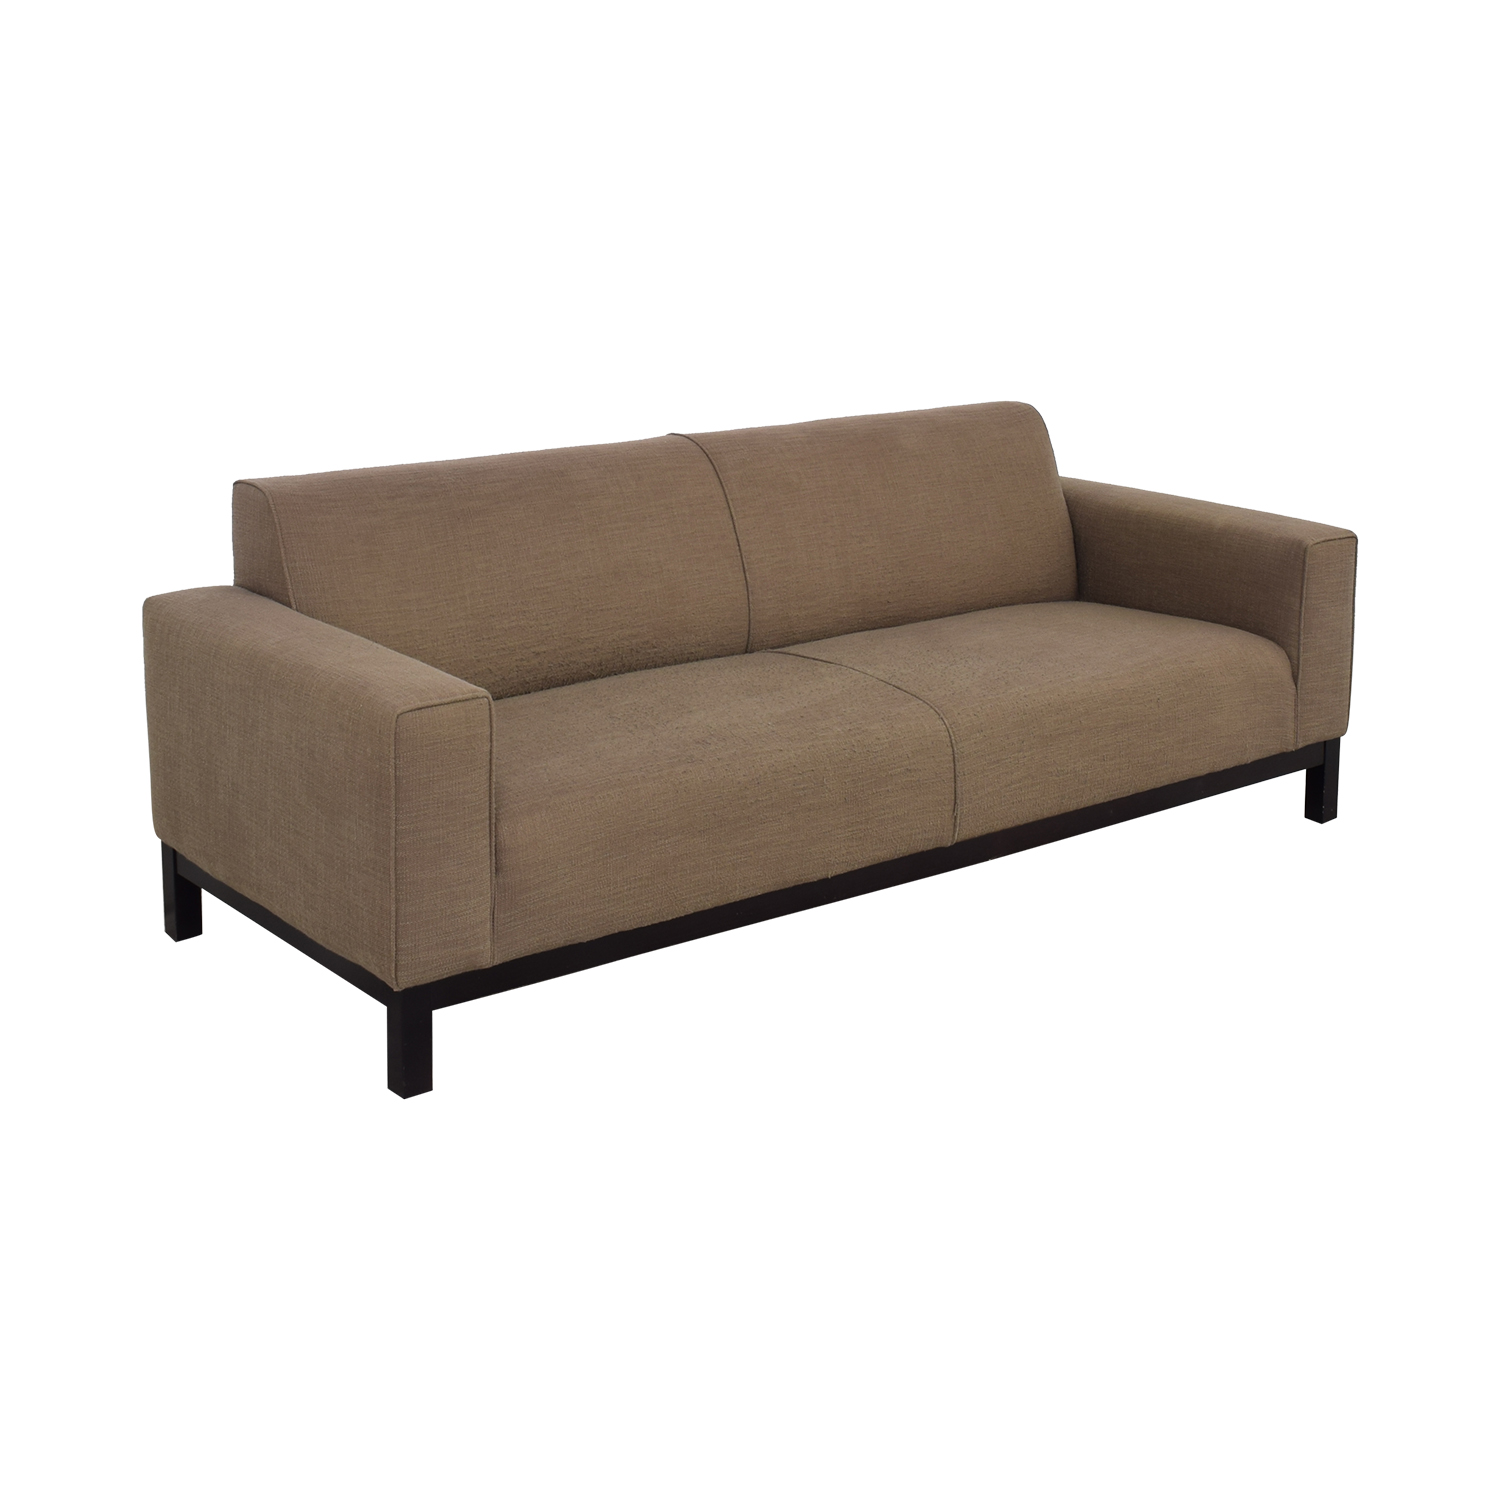 Crate & Barrel Crate & Barrel Tight Back Sofa ma